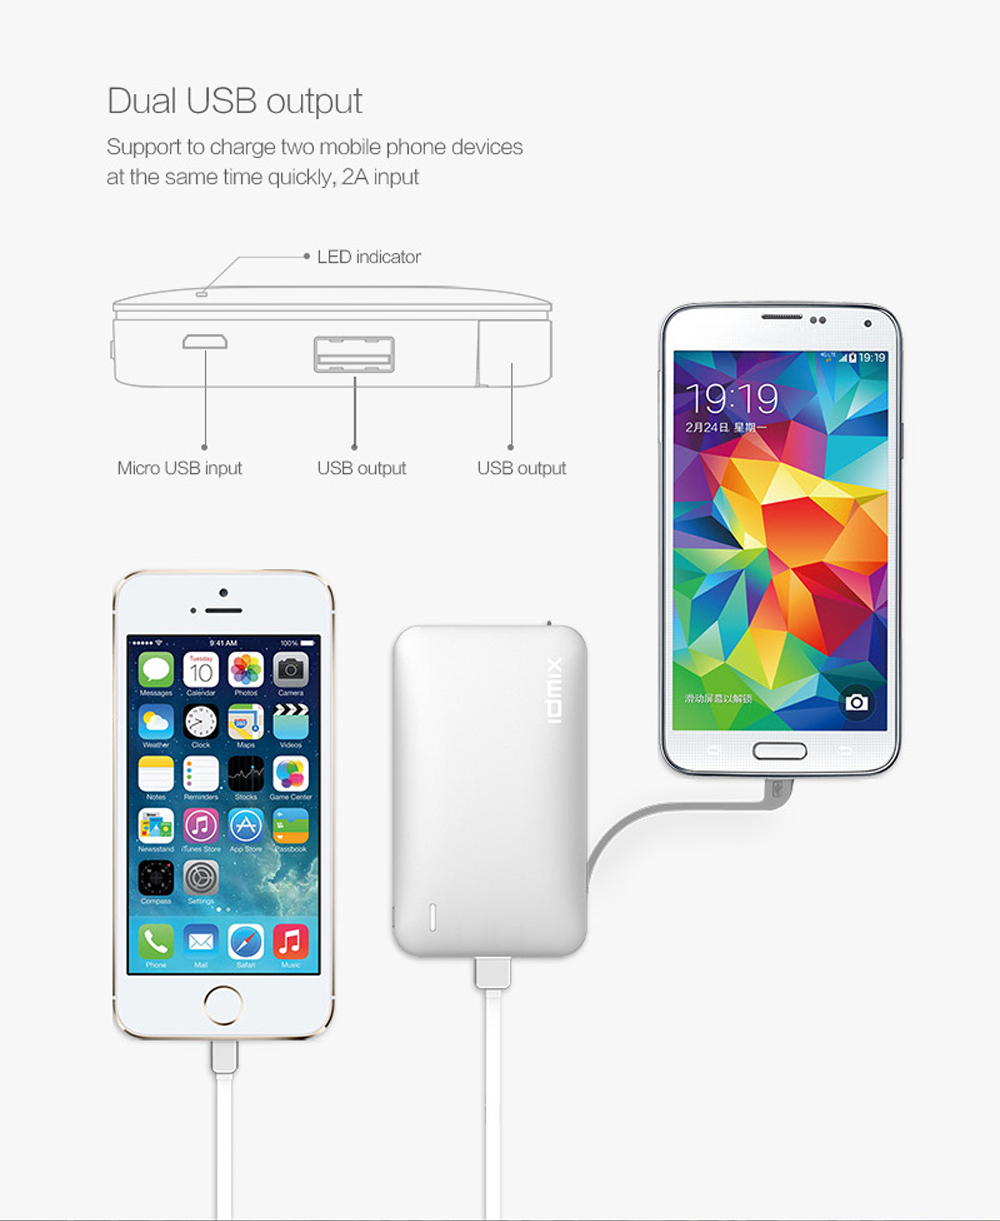 IDMIX DM - X8 8100mAh Mobile Power Bank Built-in Micro USB Charging Cable 2.4A Fast Charge Output